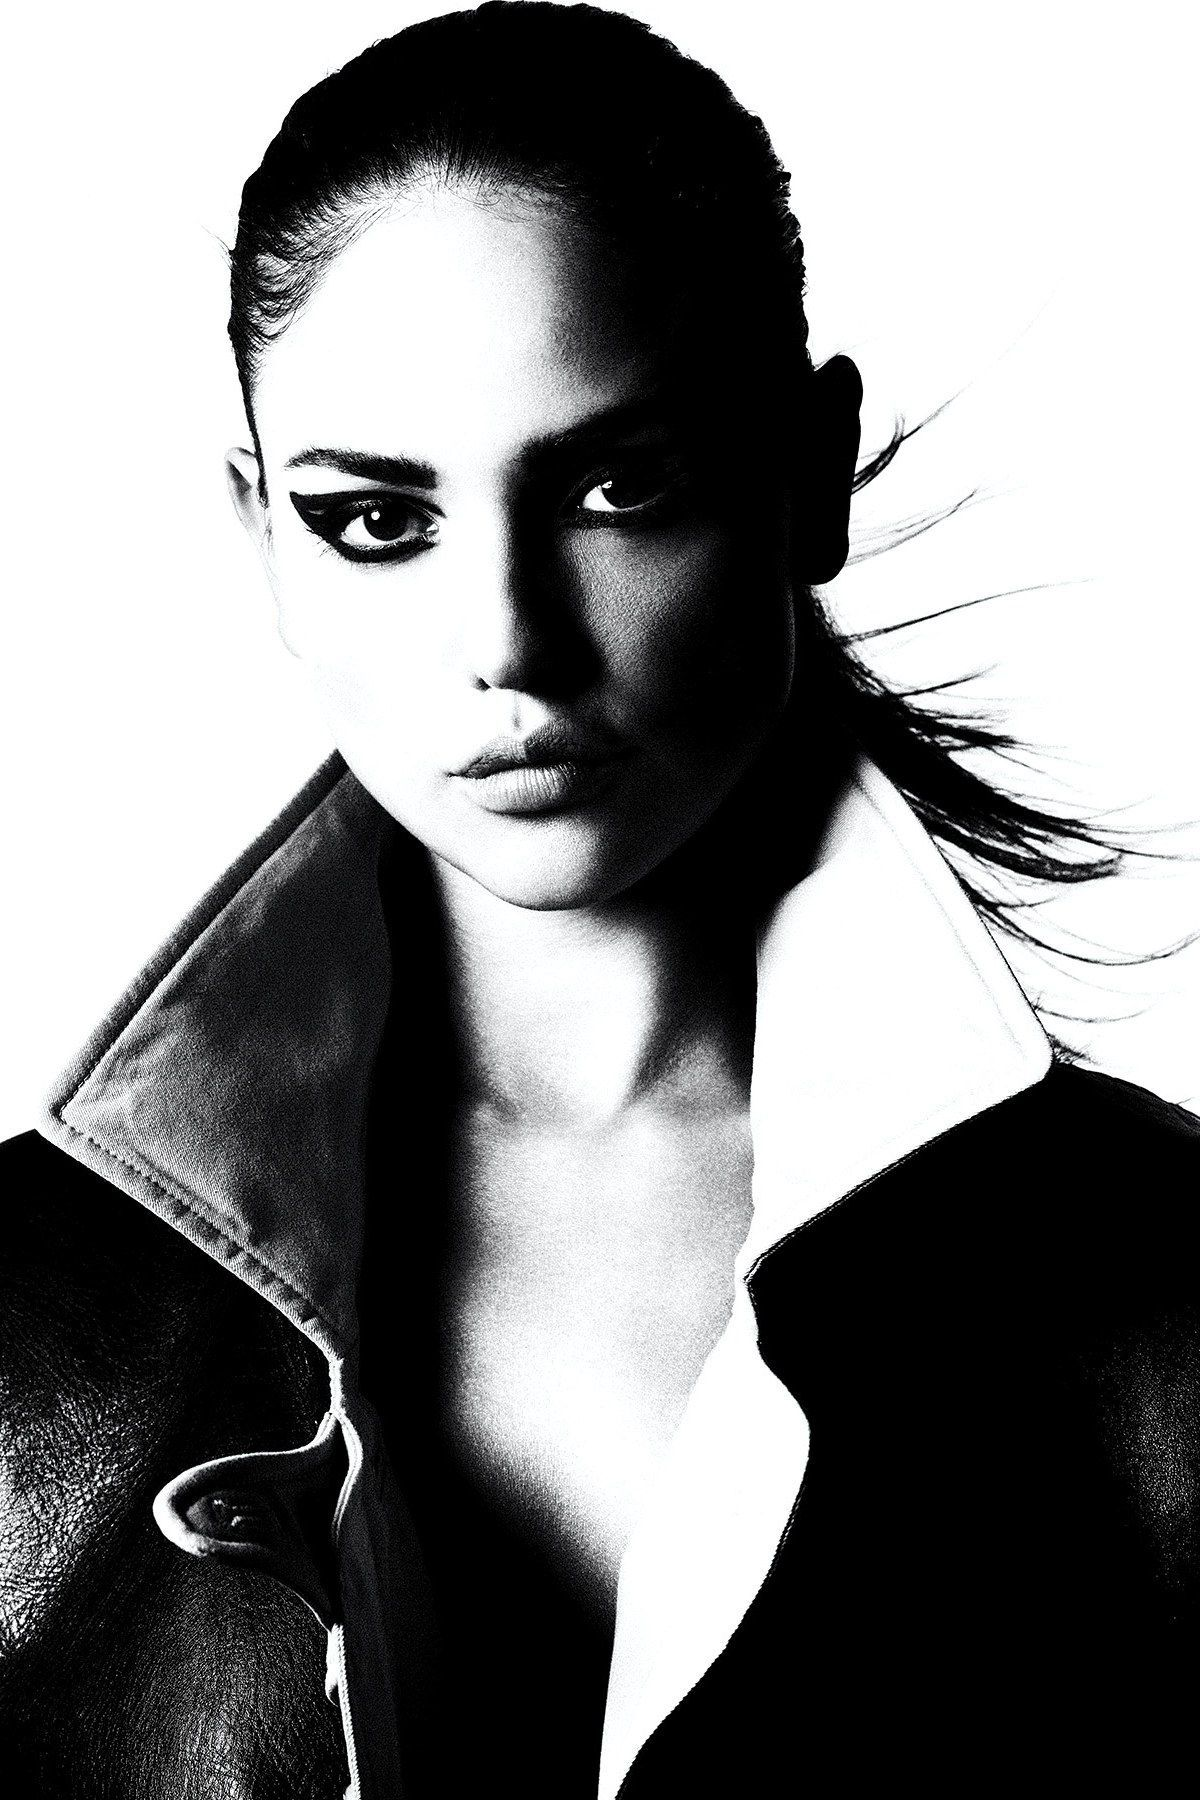 Eiza Gonzalez, face in bw for Vugue Mexico